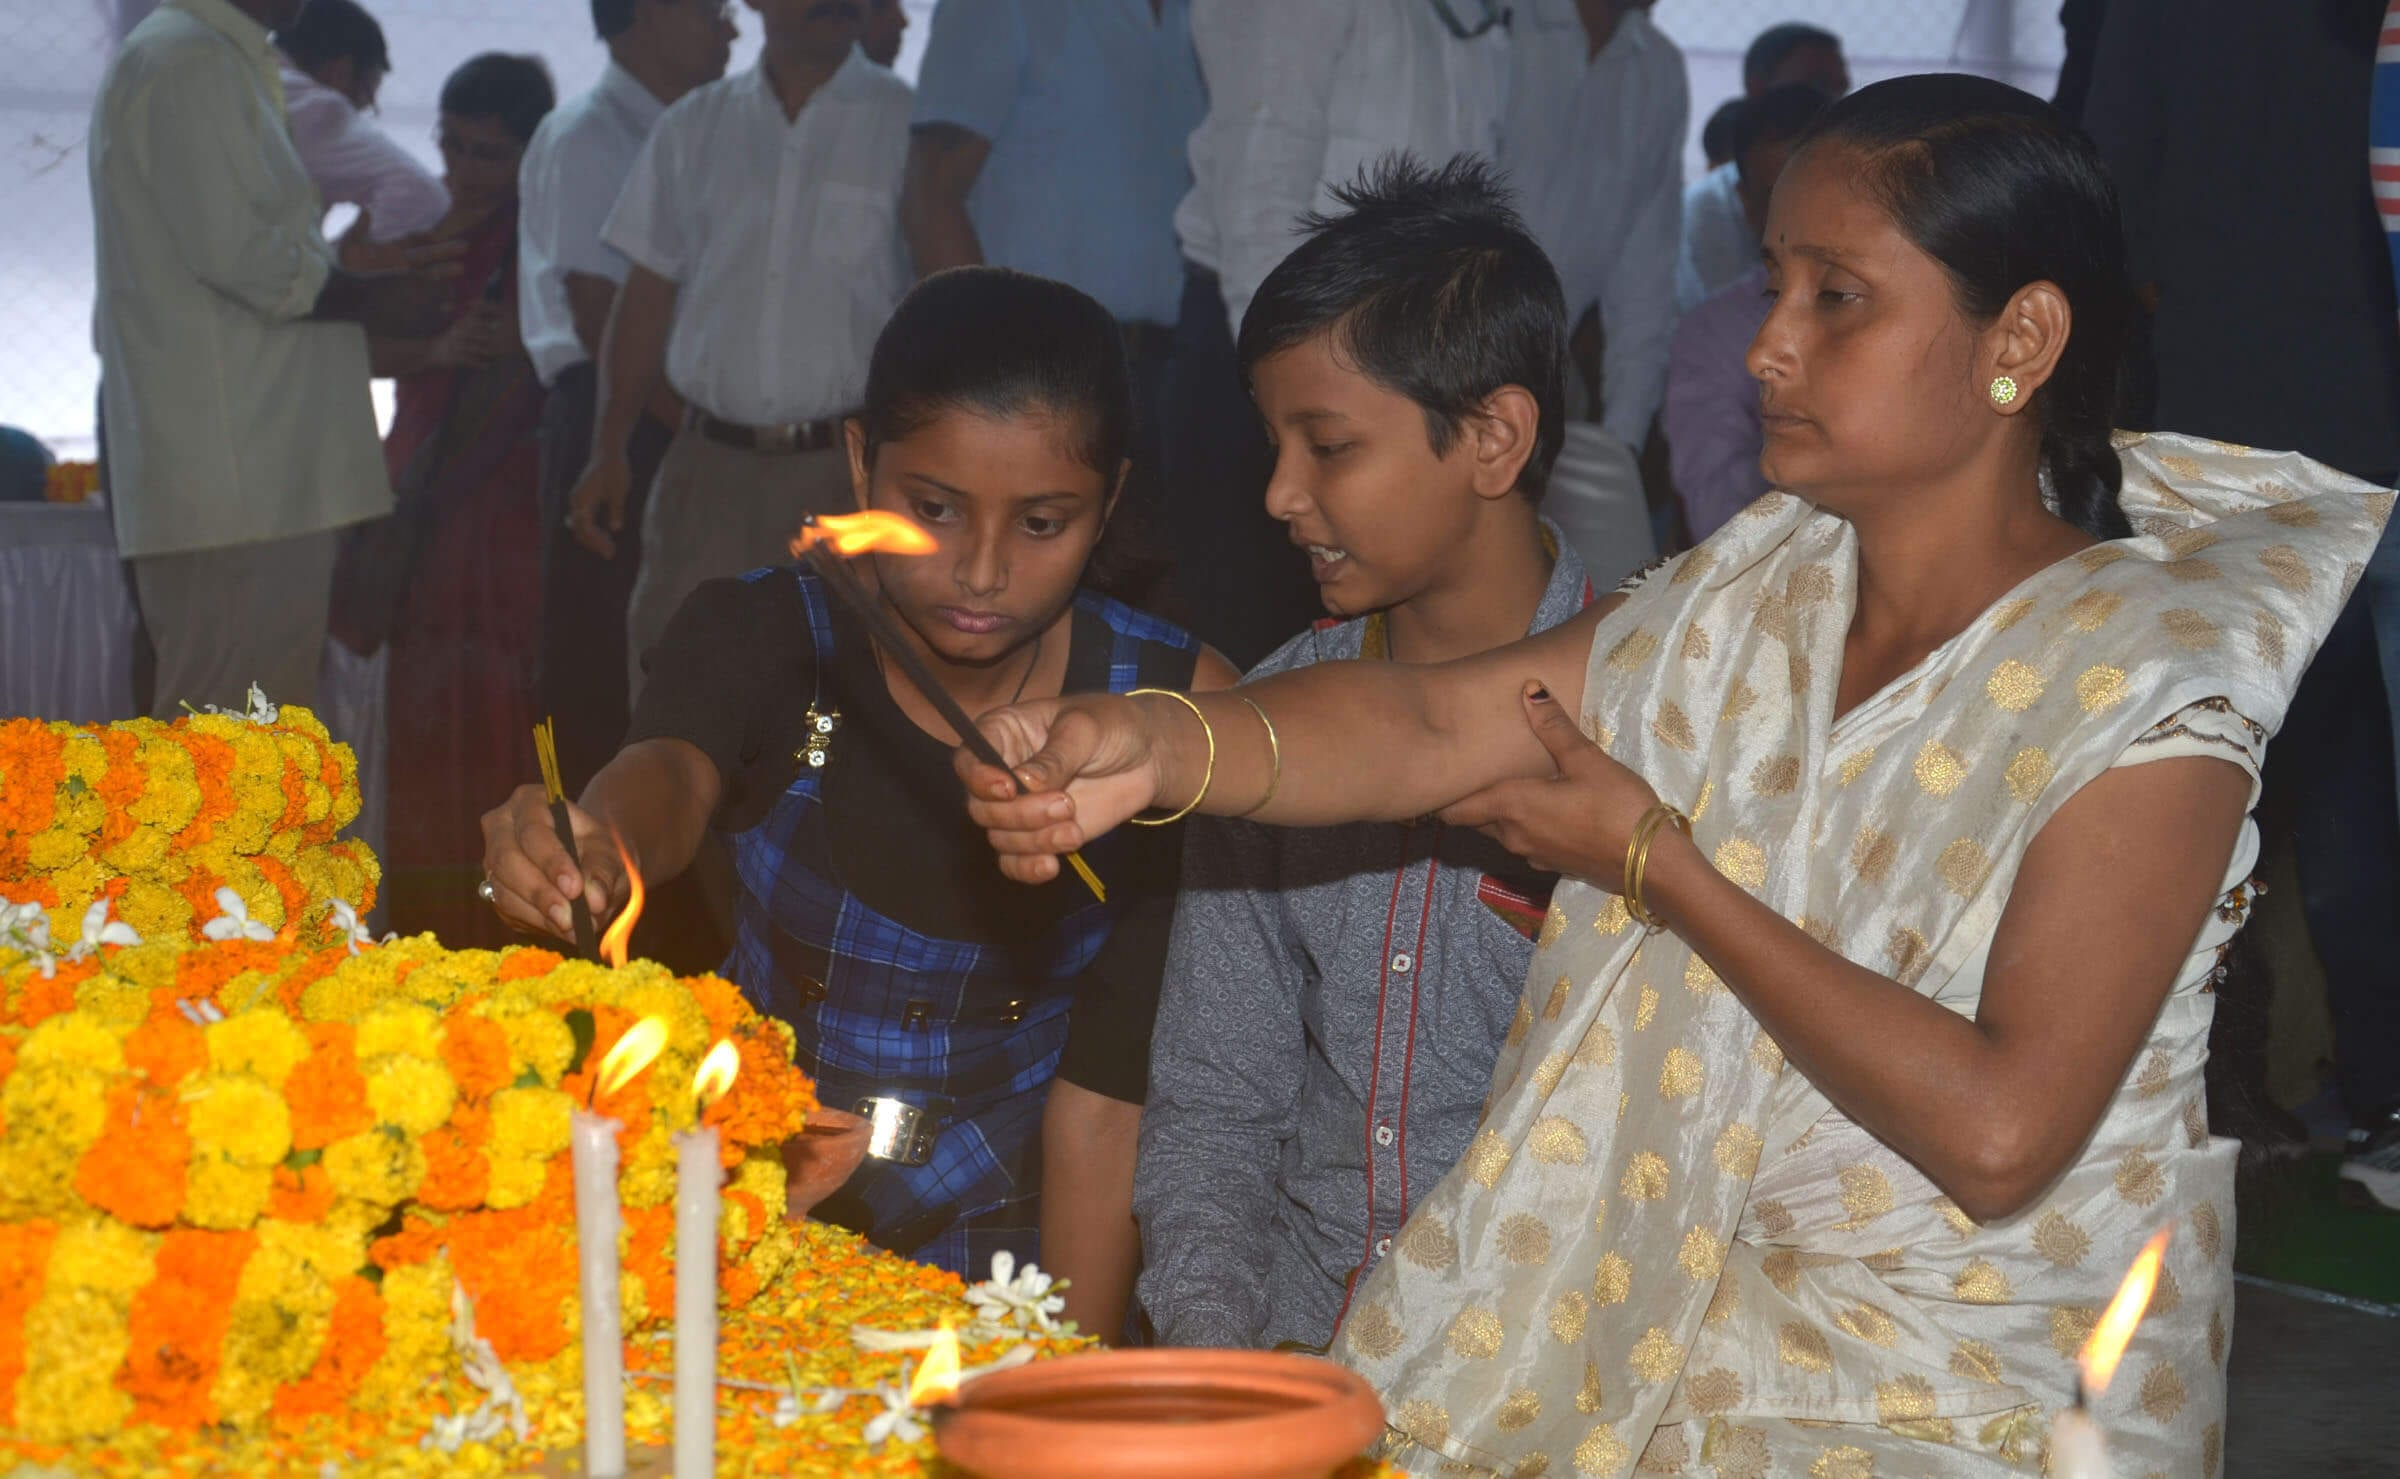 Assam Serial Blasts: State remembers October 30, 2008 terror victims